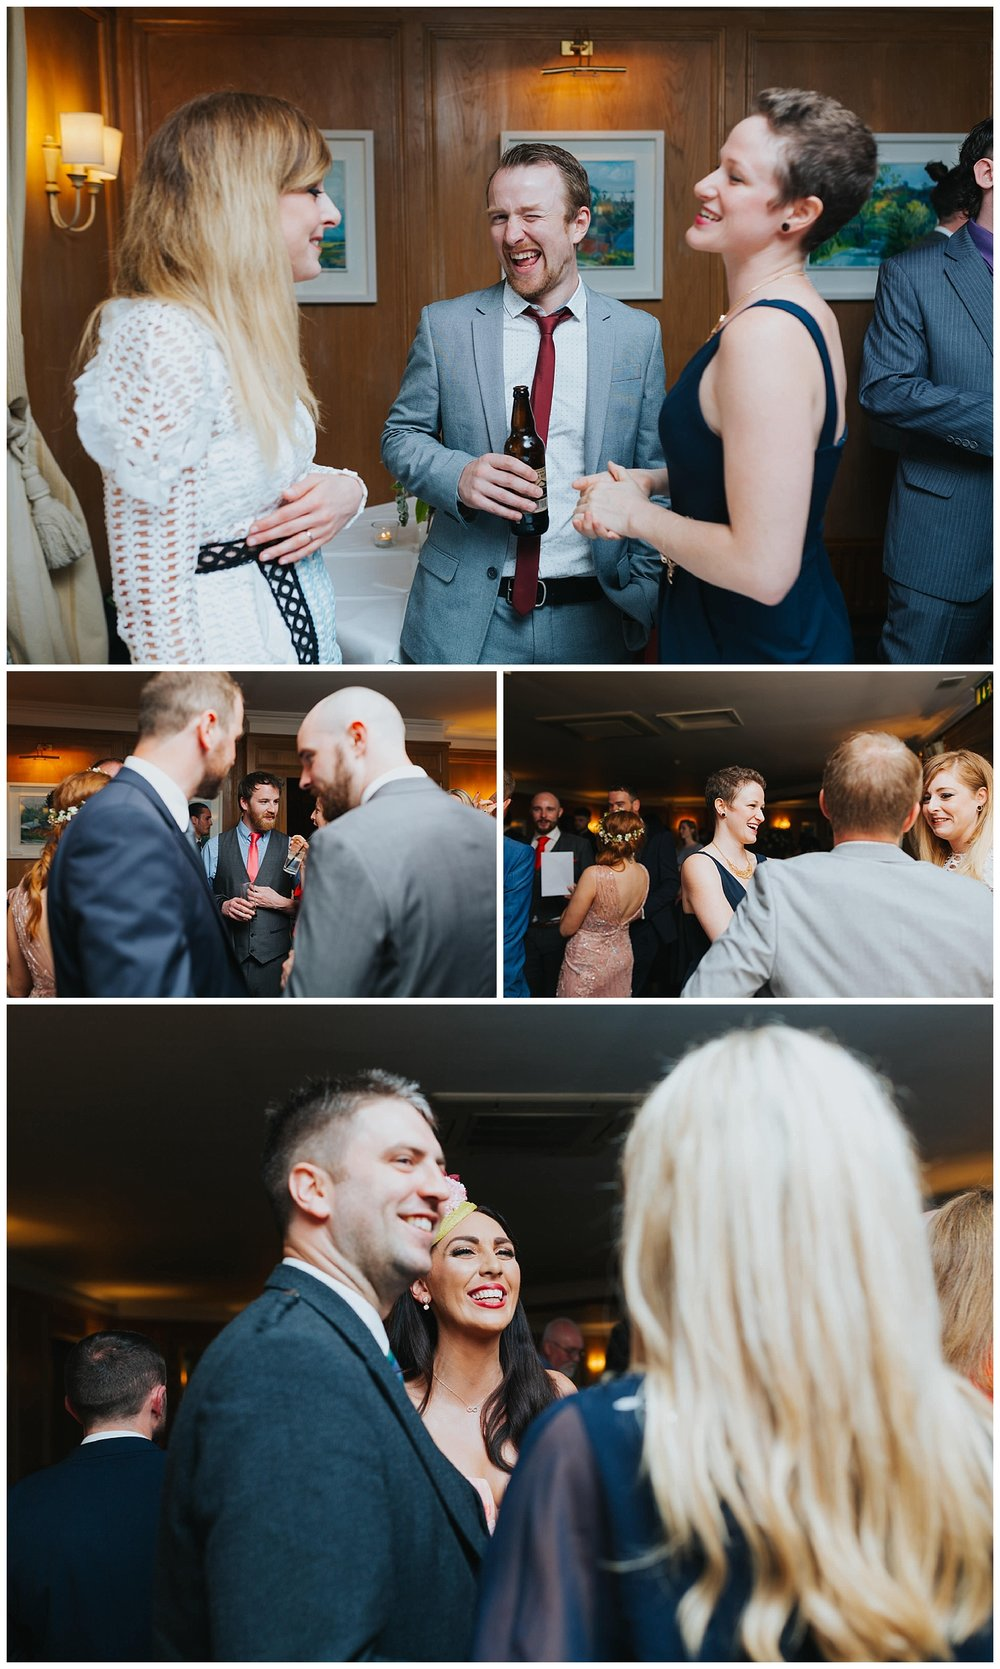 p+g_rathsallagh_house_wedding_livia_figueiredo_845.jpg